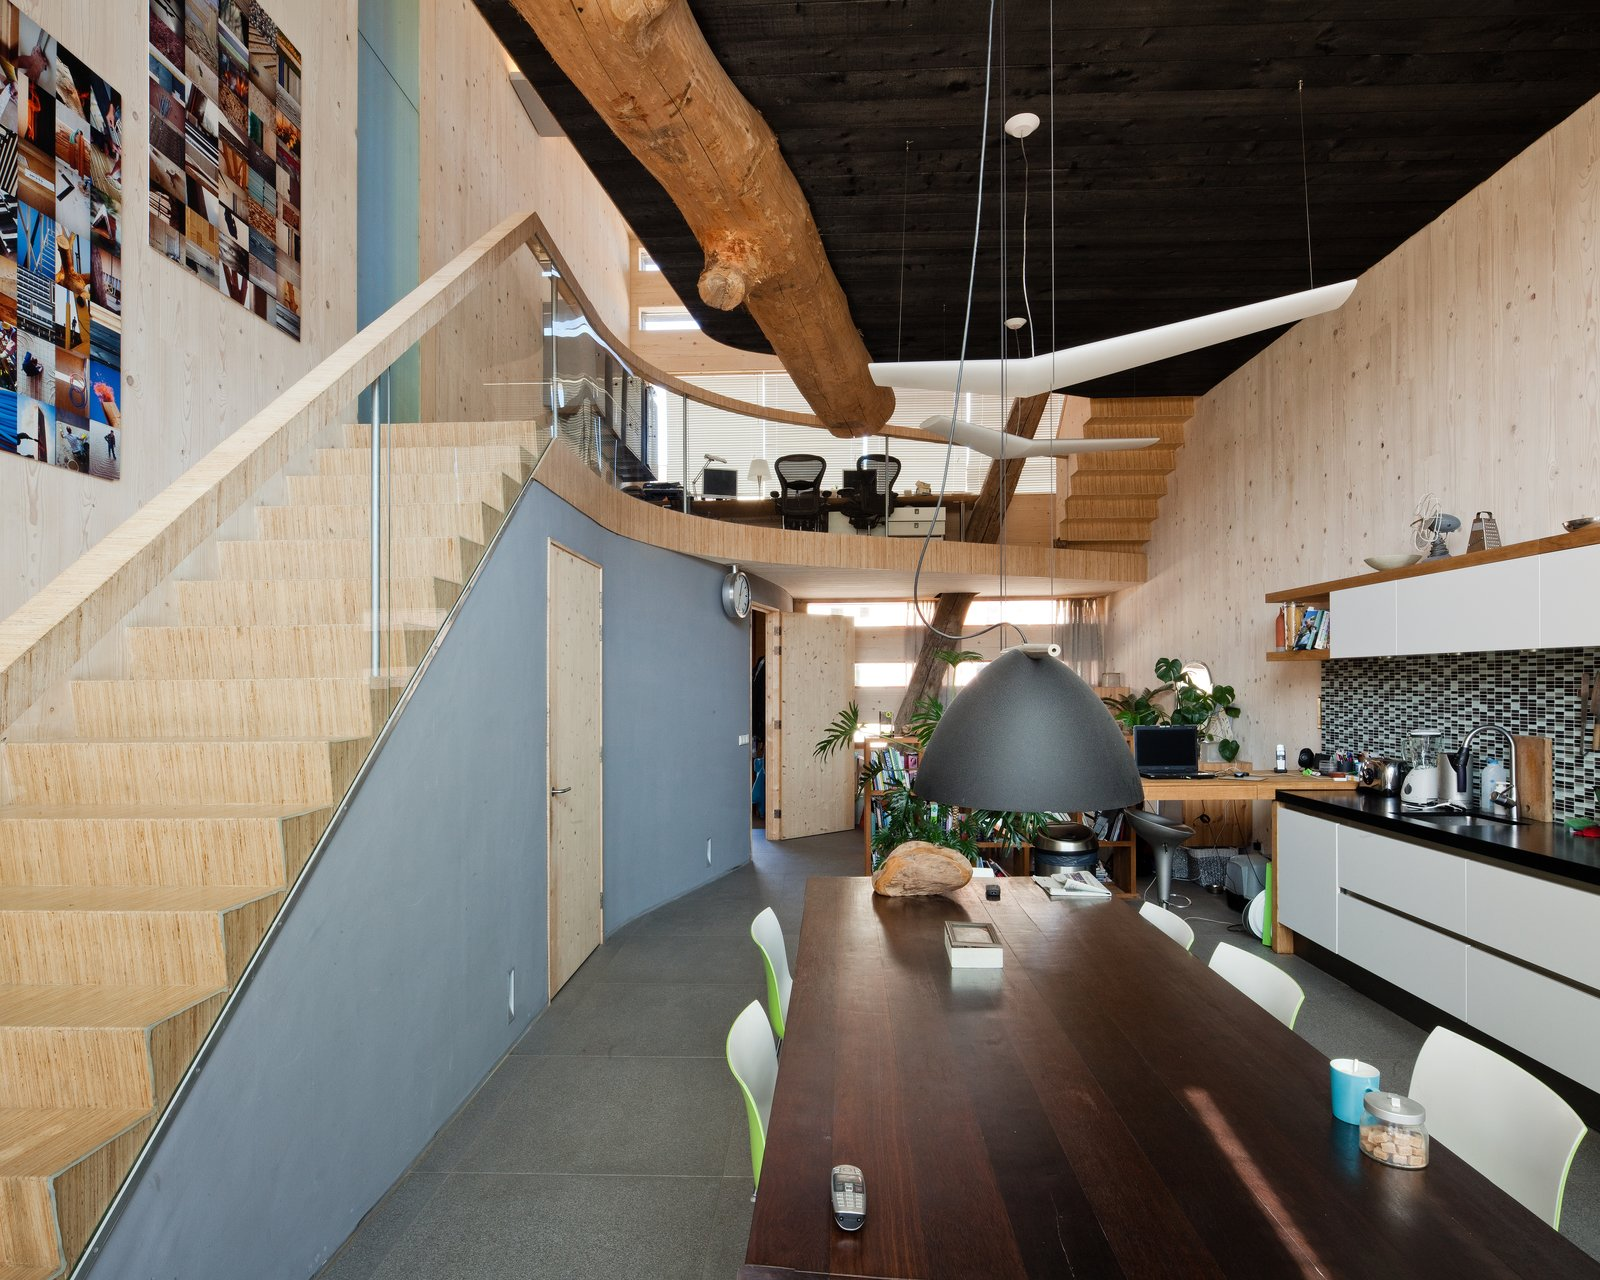 The dining and kitchen area are located on the first floor. The ceramic tile floor is from a local source, which is Cradle to Cradle certified.  Photo 4 of 5 in A Passive House in the Netherlands Embodies 5 Tips to Consider When Planning Your Own